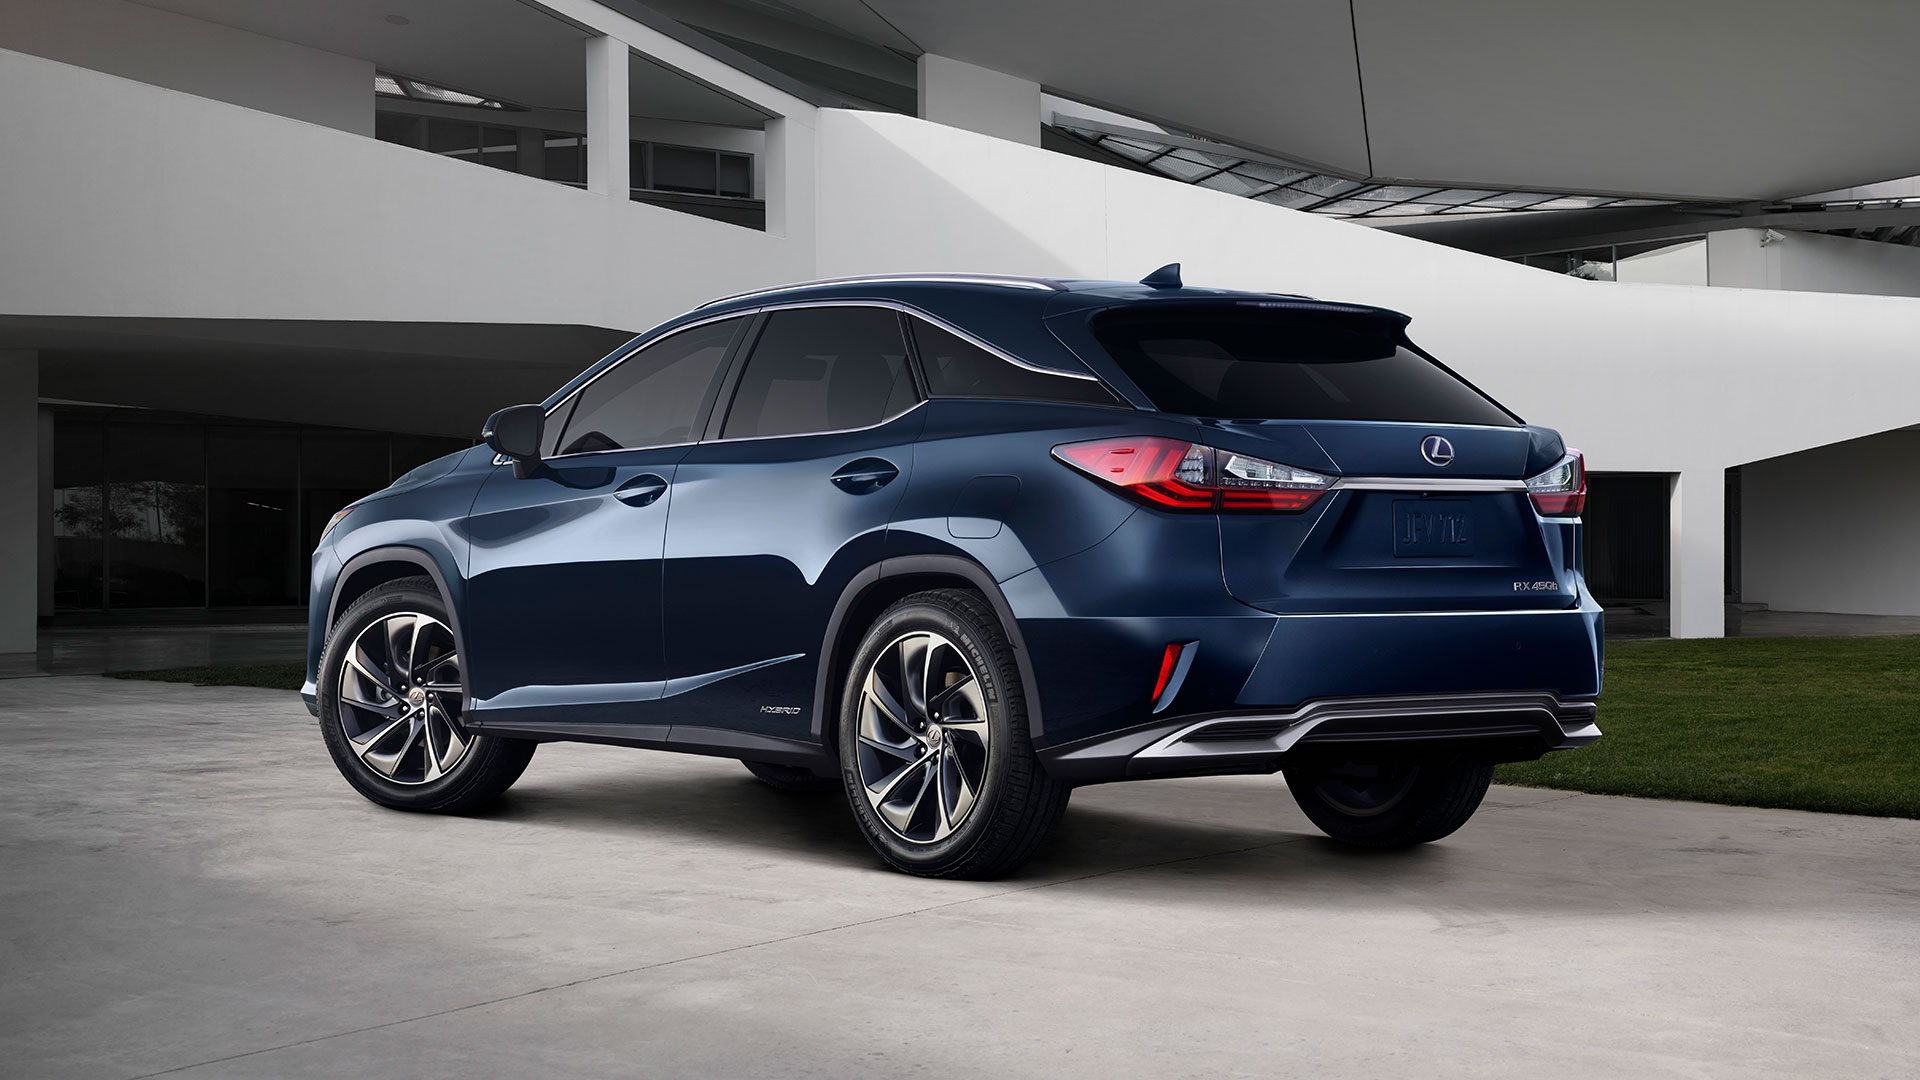 lexus rx luxury hybrid crossover explore rx 450h range lexus uk. Black Bedroom Furniture Sets. Home Design Ideas